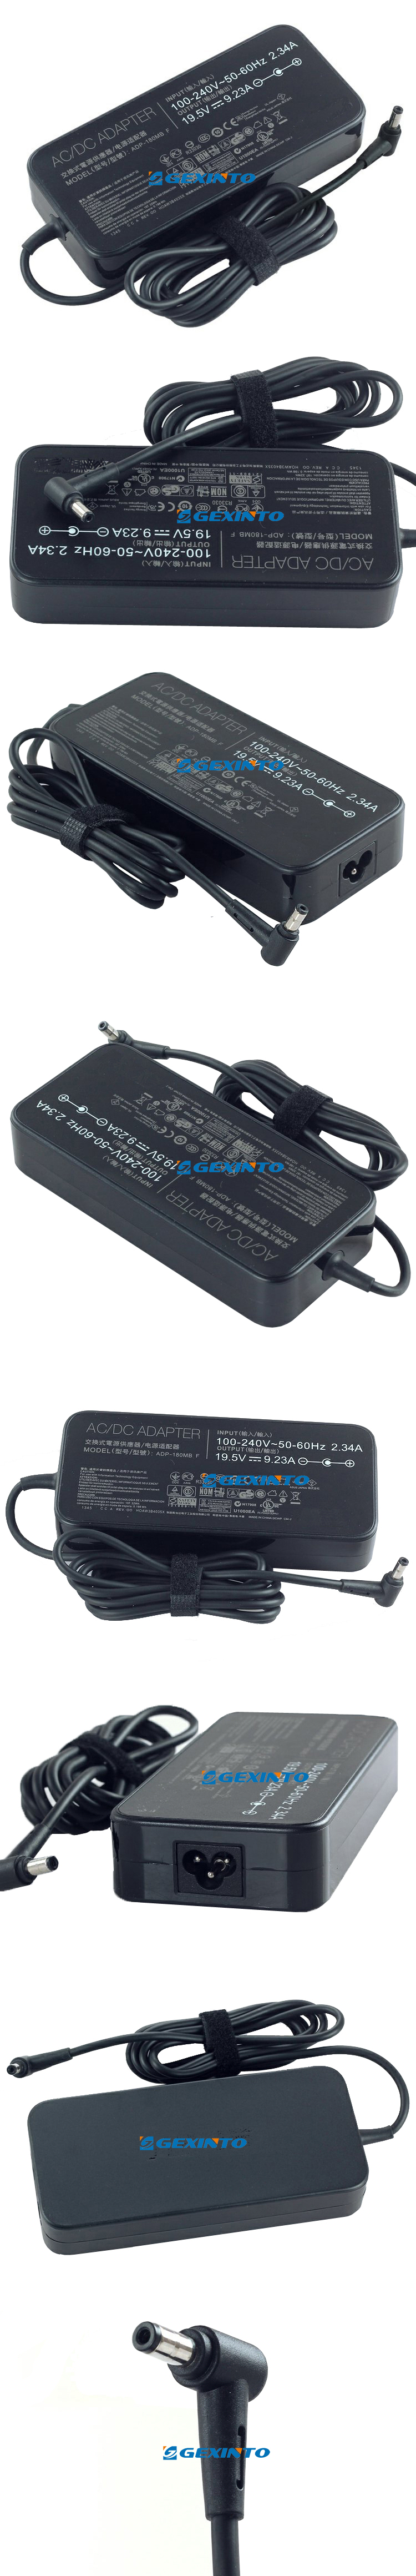 PPJ 180W AC Power Adapter Replacement for Gigabyte Aorus ADP-180MH B ADP-180MHB X3 Plus-CF2 X3-CF1 X3-CF2 X7 V2 X7-CF1 X7V2-CF1 P2742G X5 X5-CF1 Schenker XMG P501 P502 P503 P504 Series Laptop